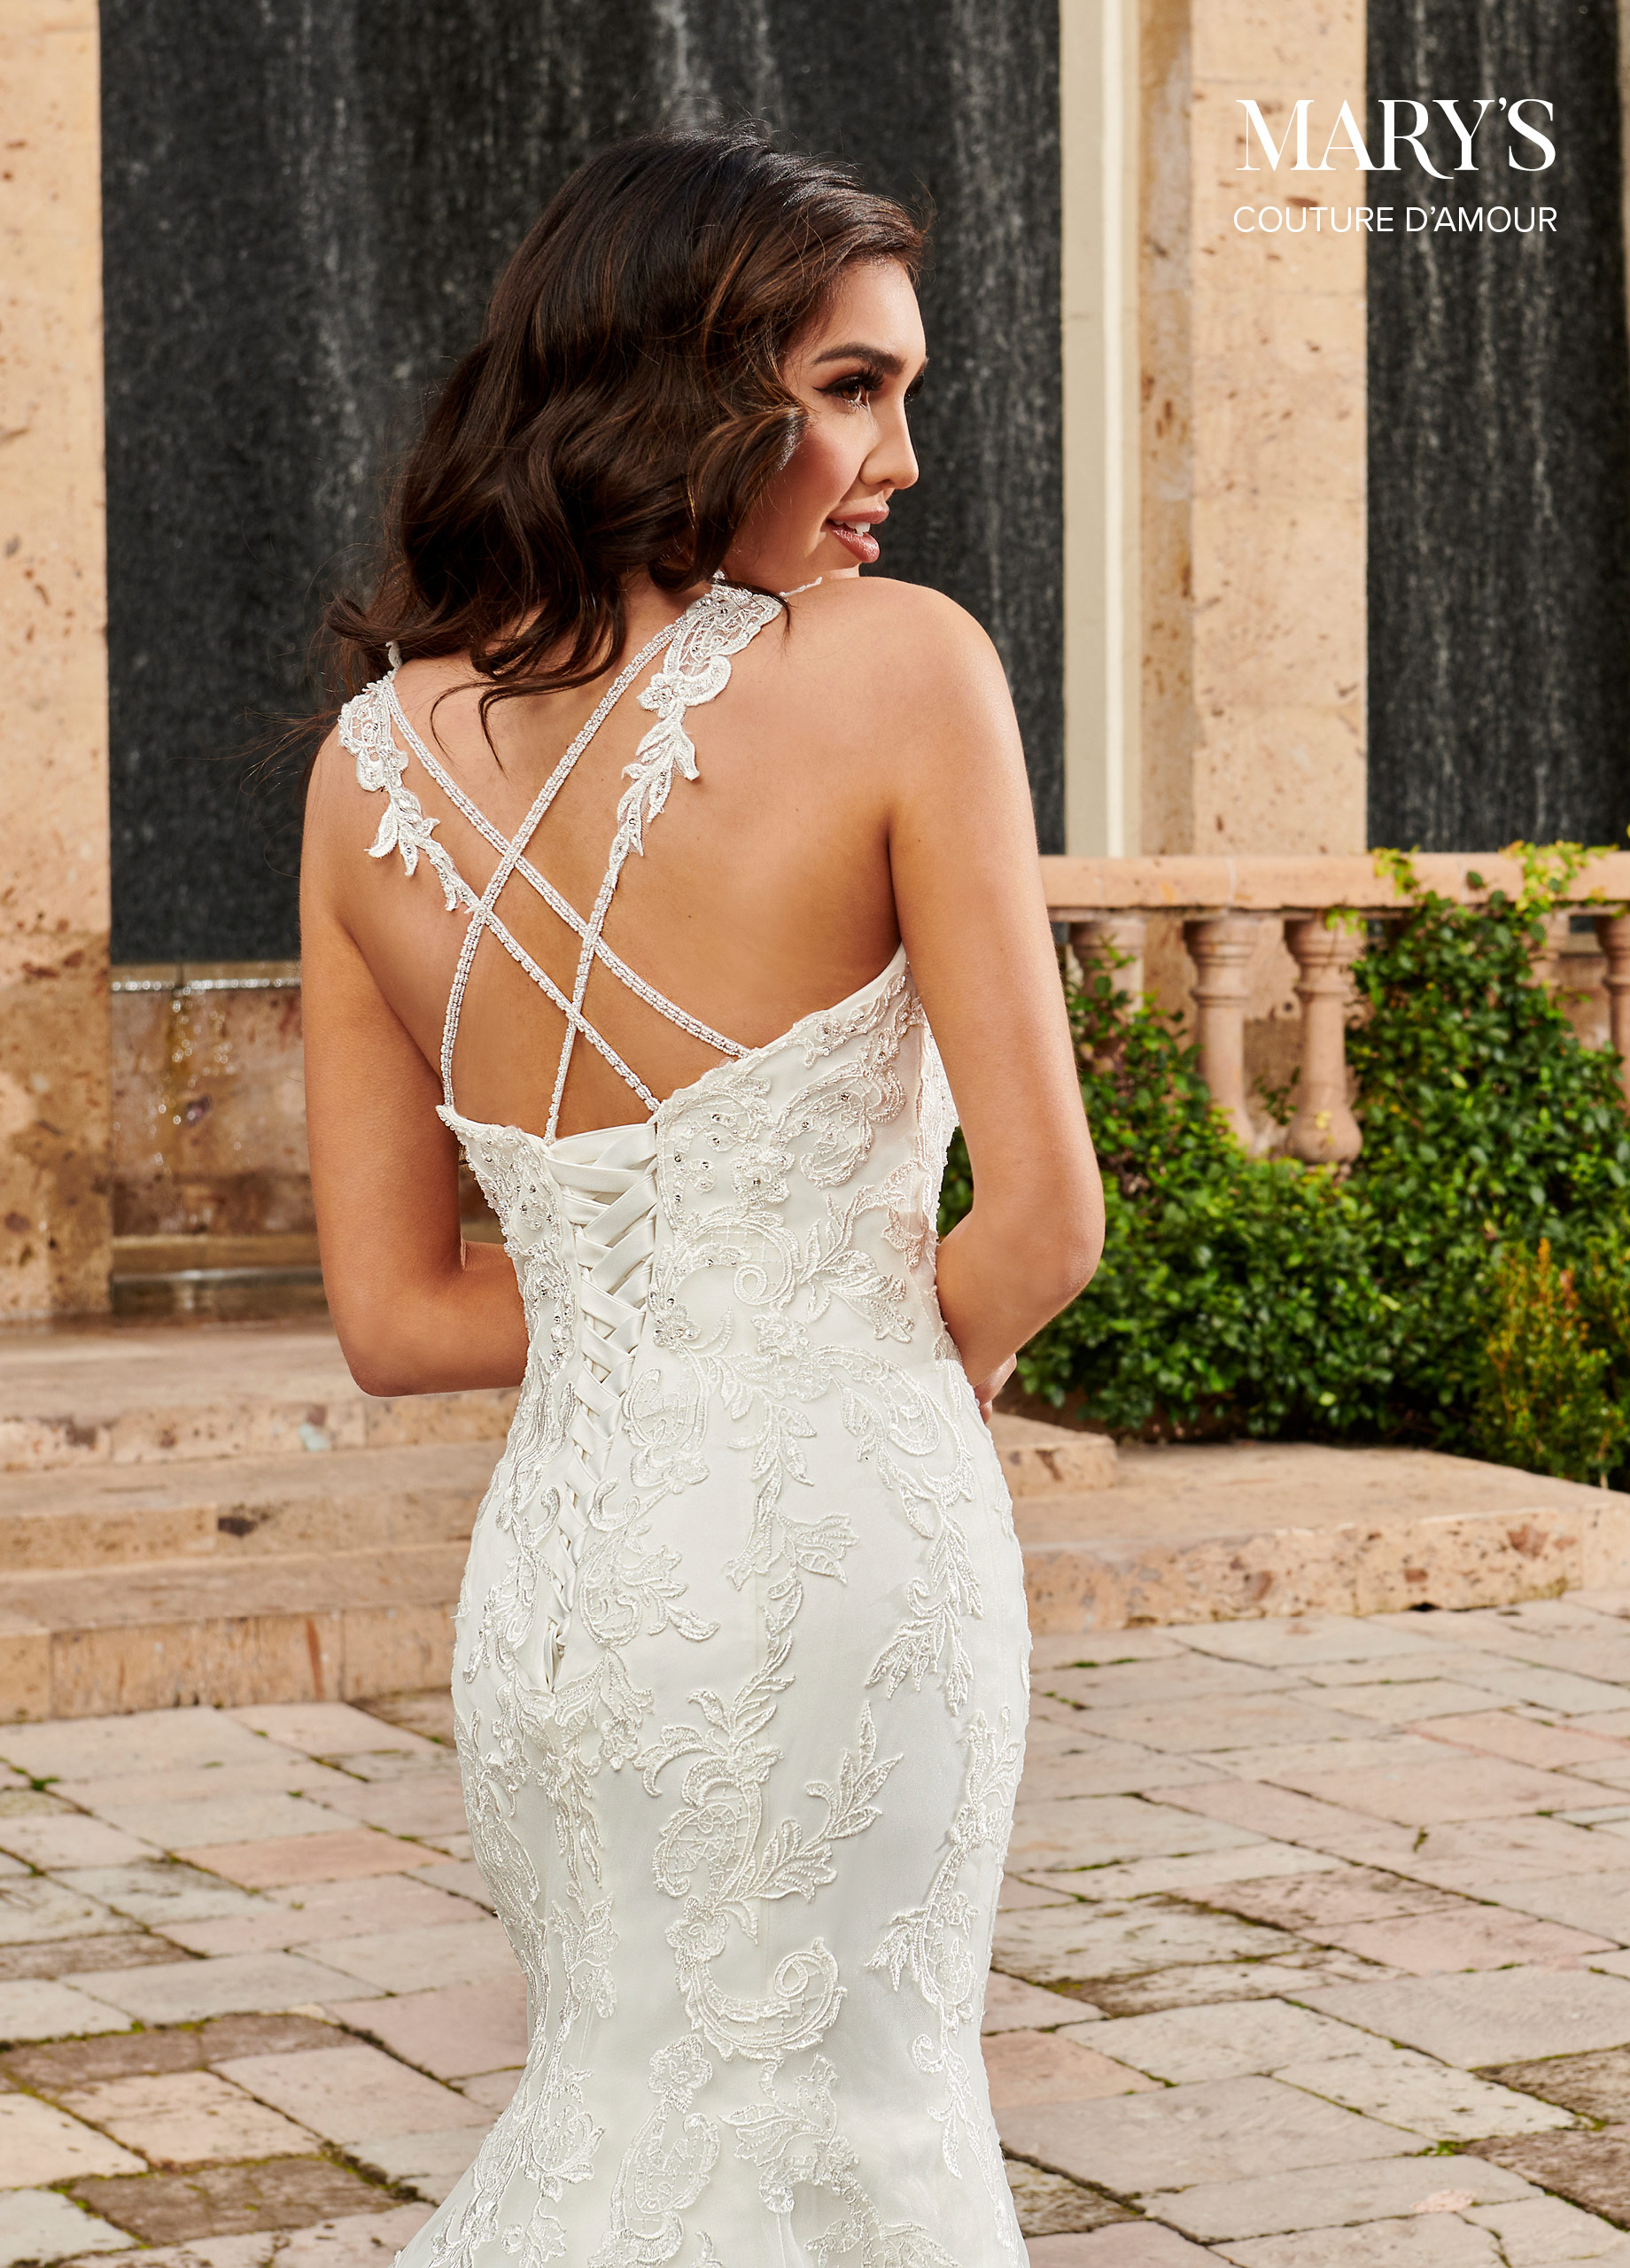 Couture Damour Bridal Dresses   Couture d'Amour   Style - MB4111